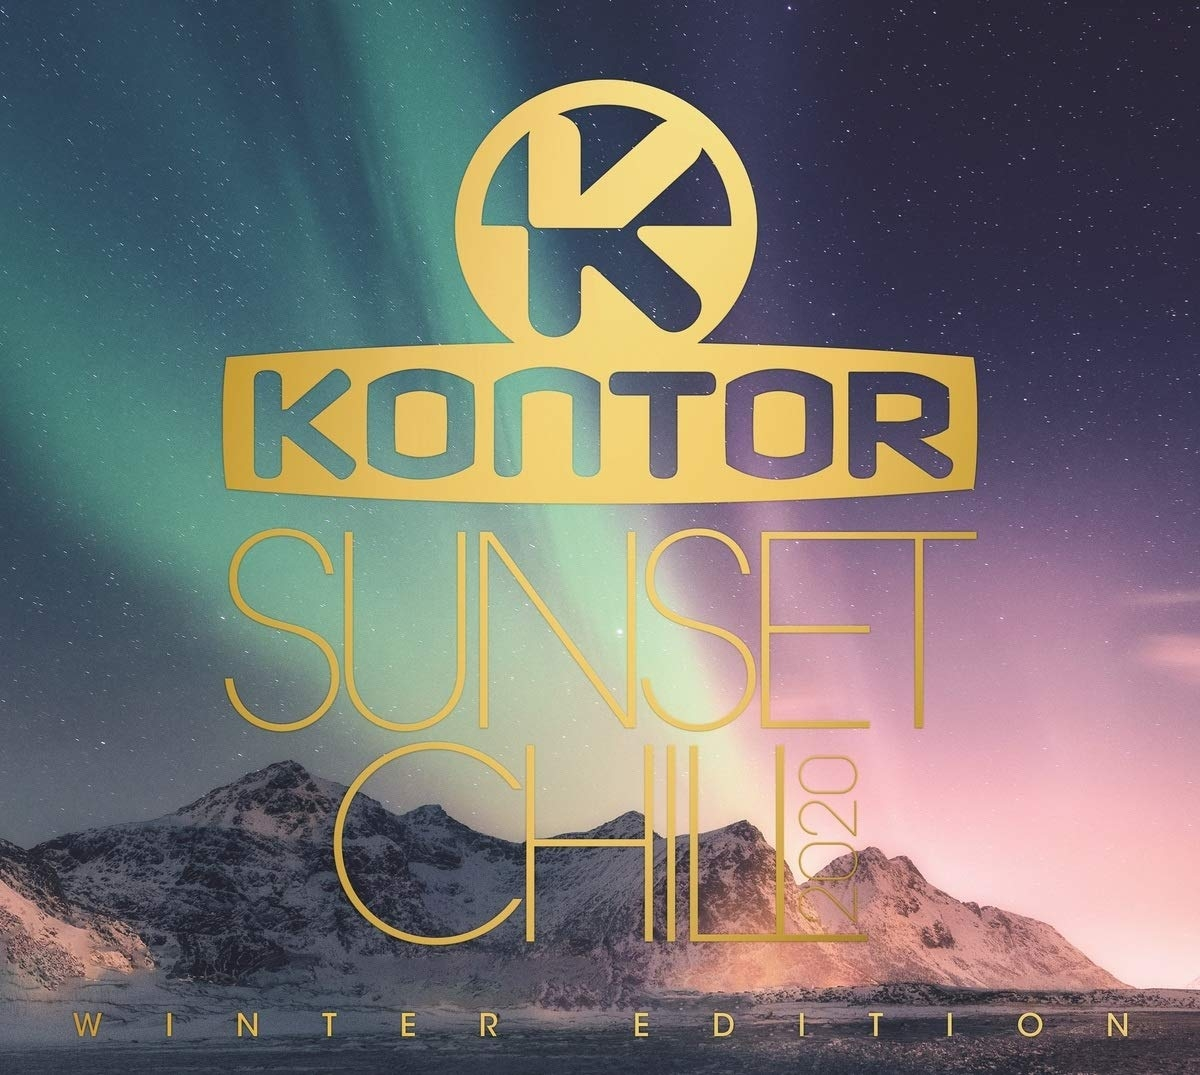 electro 02 20 kontor winter chill